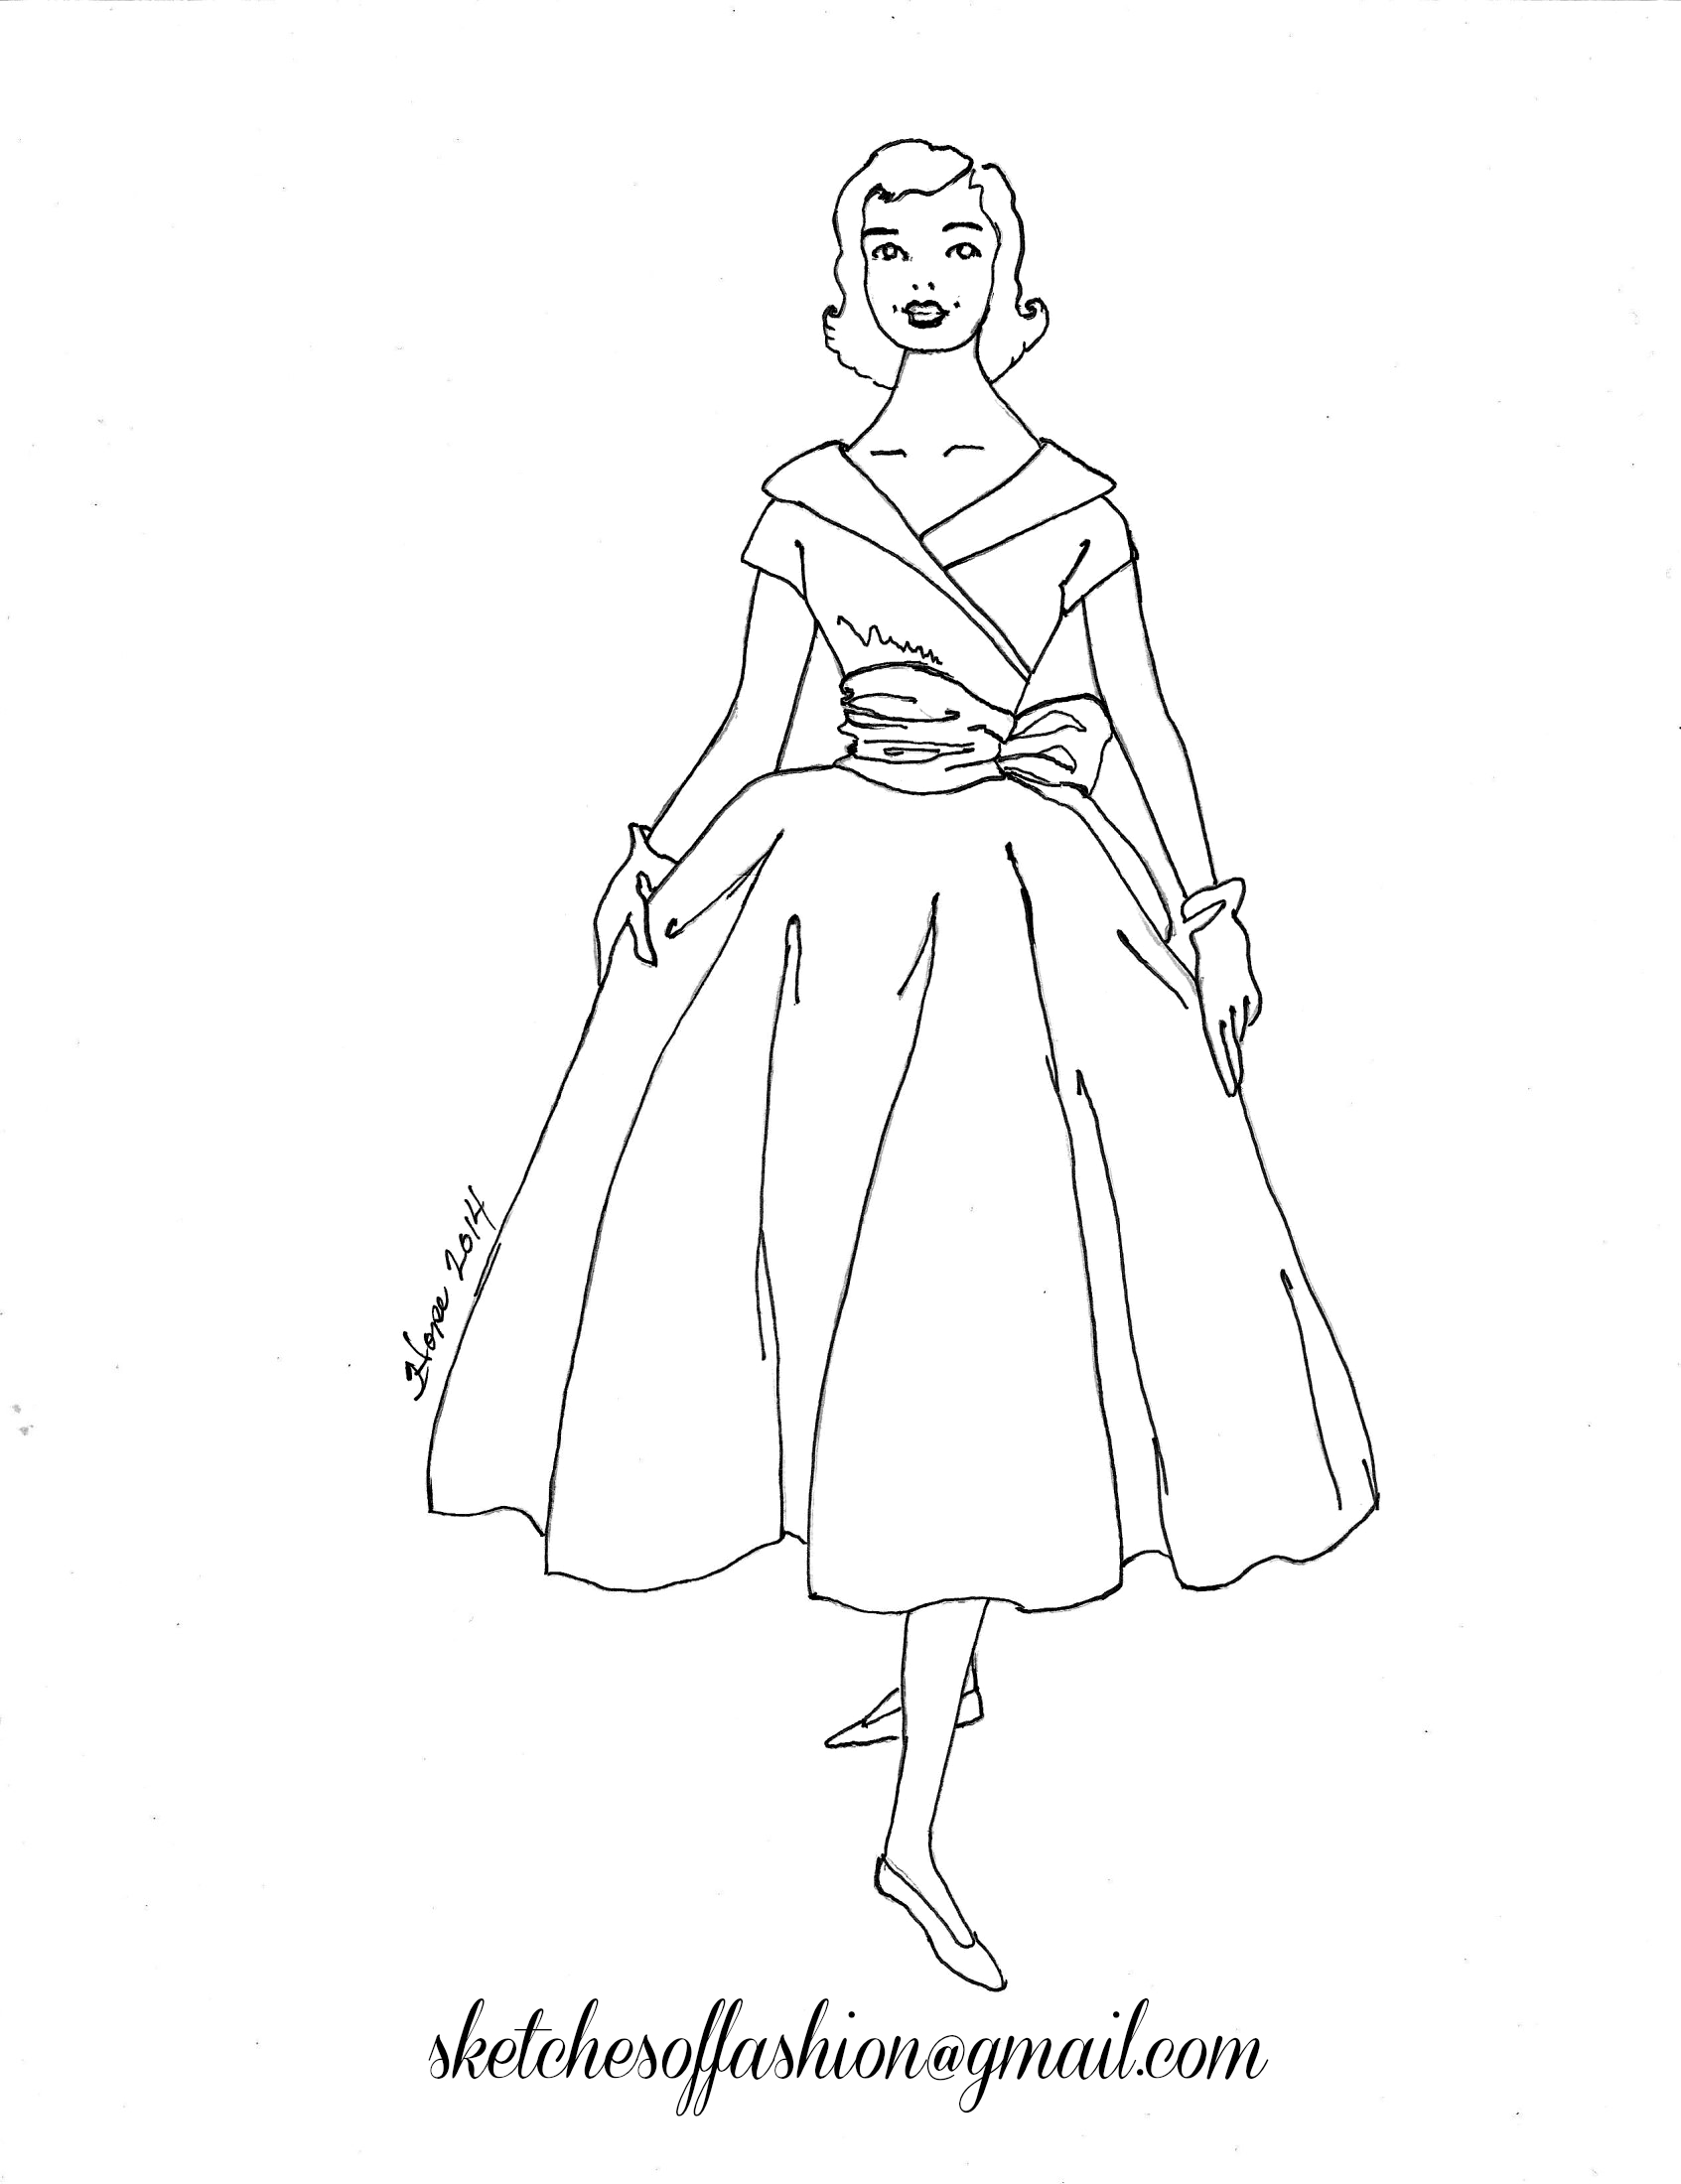 Fashion design a fashion sketch colouring pages,fashion design ...